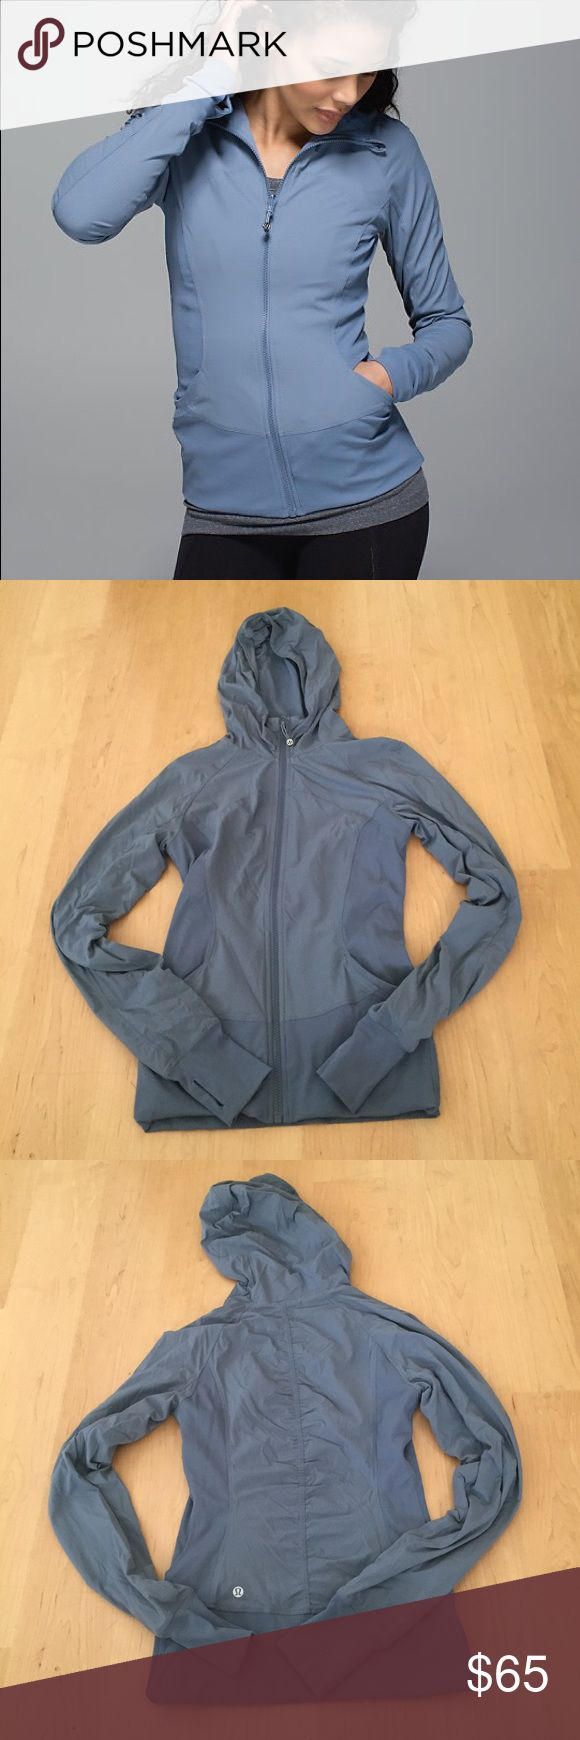 "In Flux Jacket Size 6 in flux jacket, color is ""blue denim"". Only worn a handful of times, in EUC. All reasonable offers considered ❤ (the last photo is an image I found online to show the jacket description) lululemon athletica Jackets & Coats"